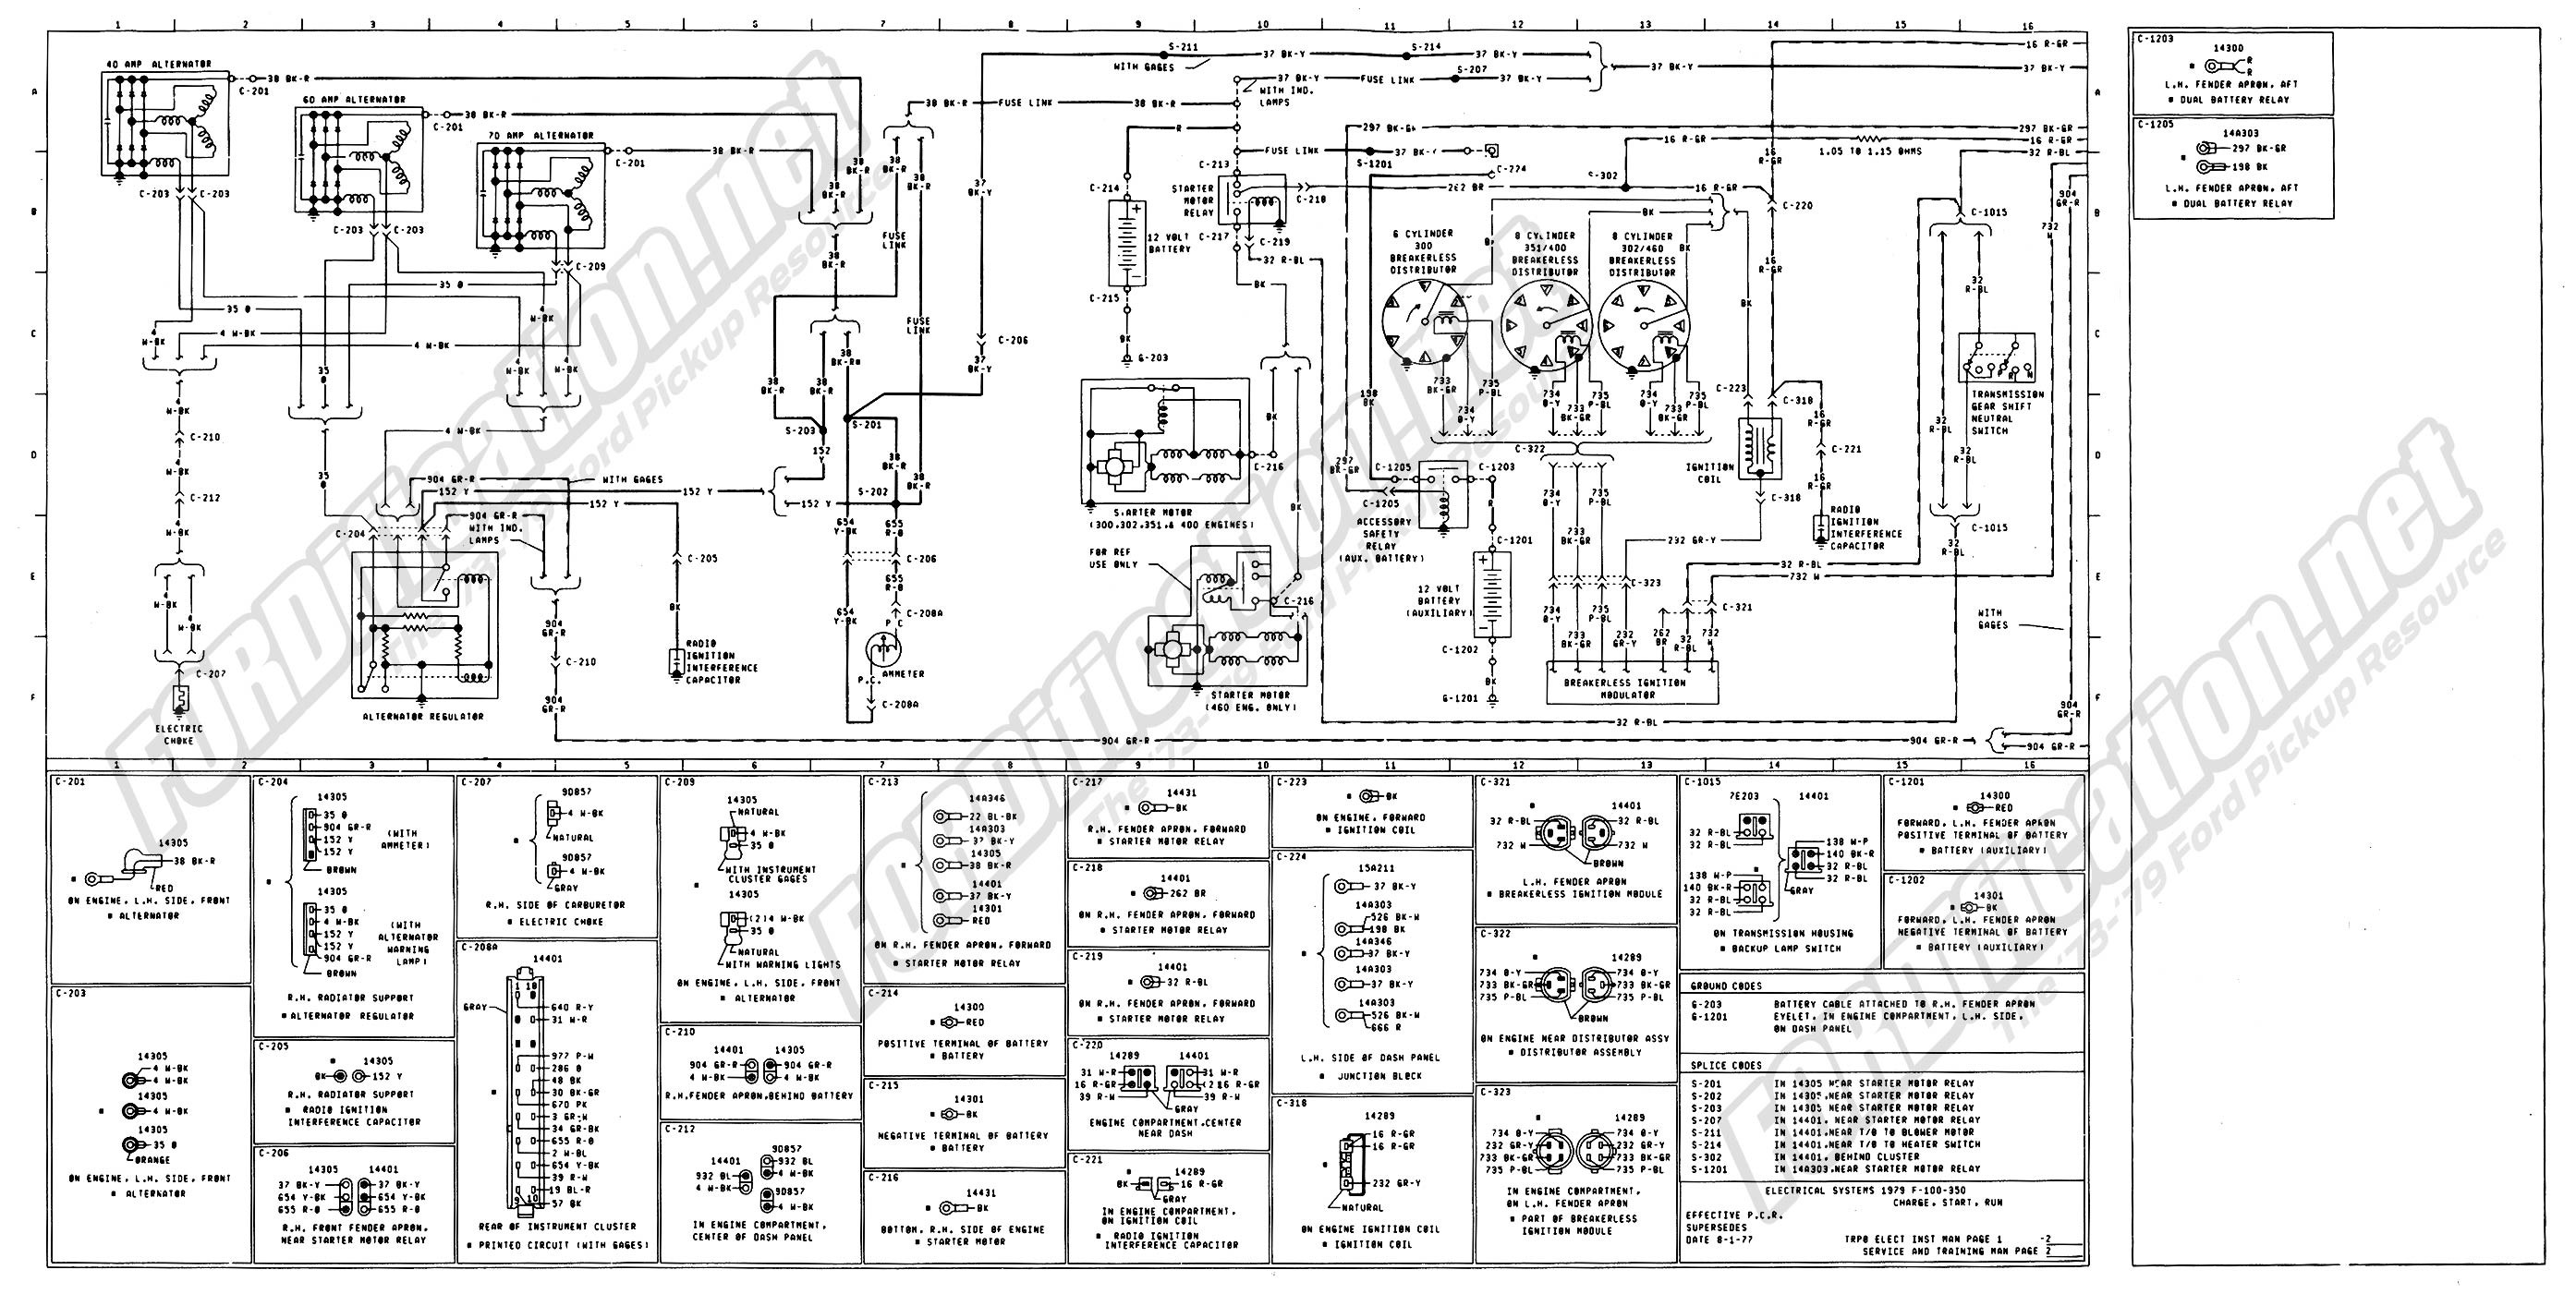 1967 Ford F100 Wiring Diagram from mainetreasurechest.com